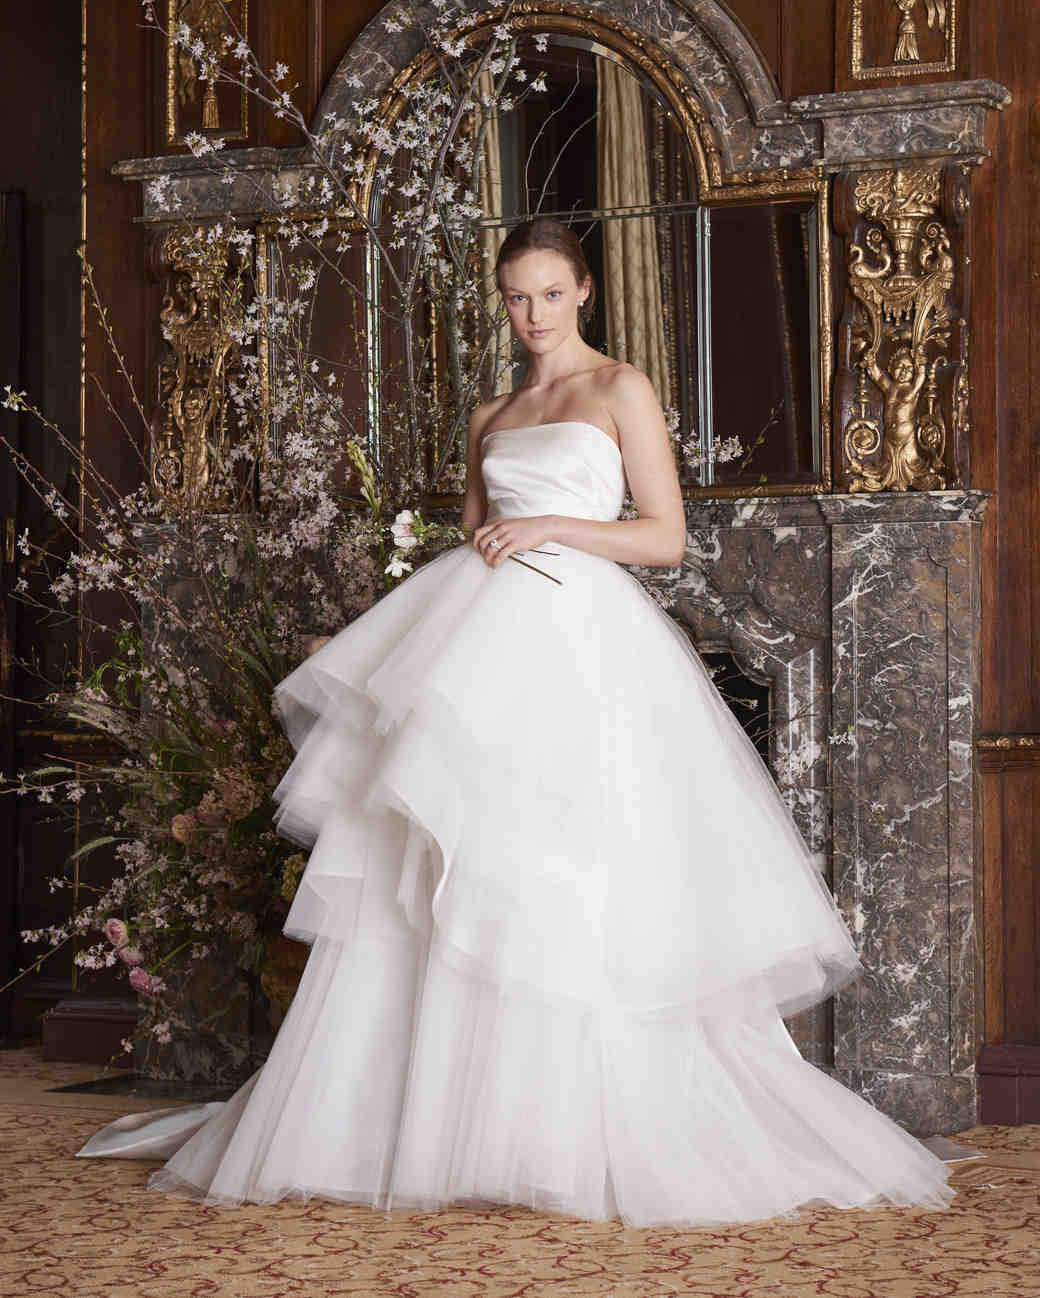 monique lhuillier wedding dress spring 2019 tiered tulle